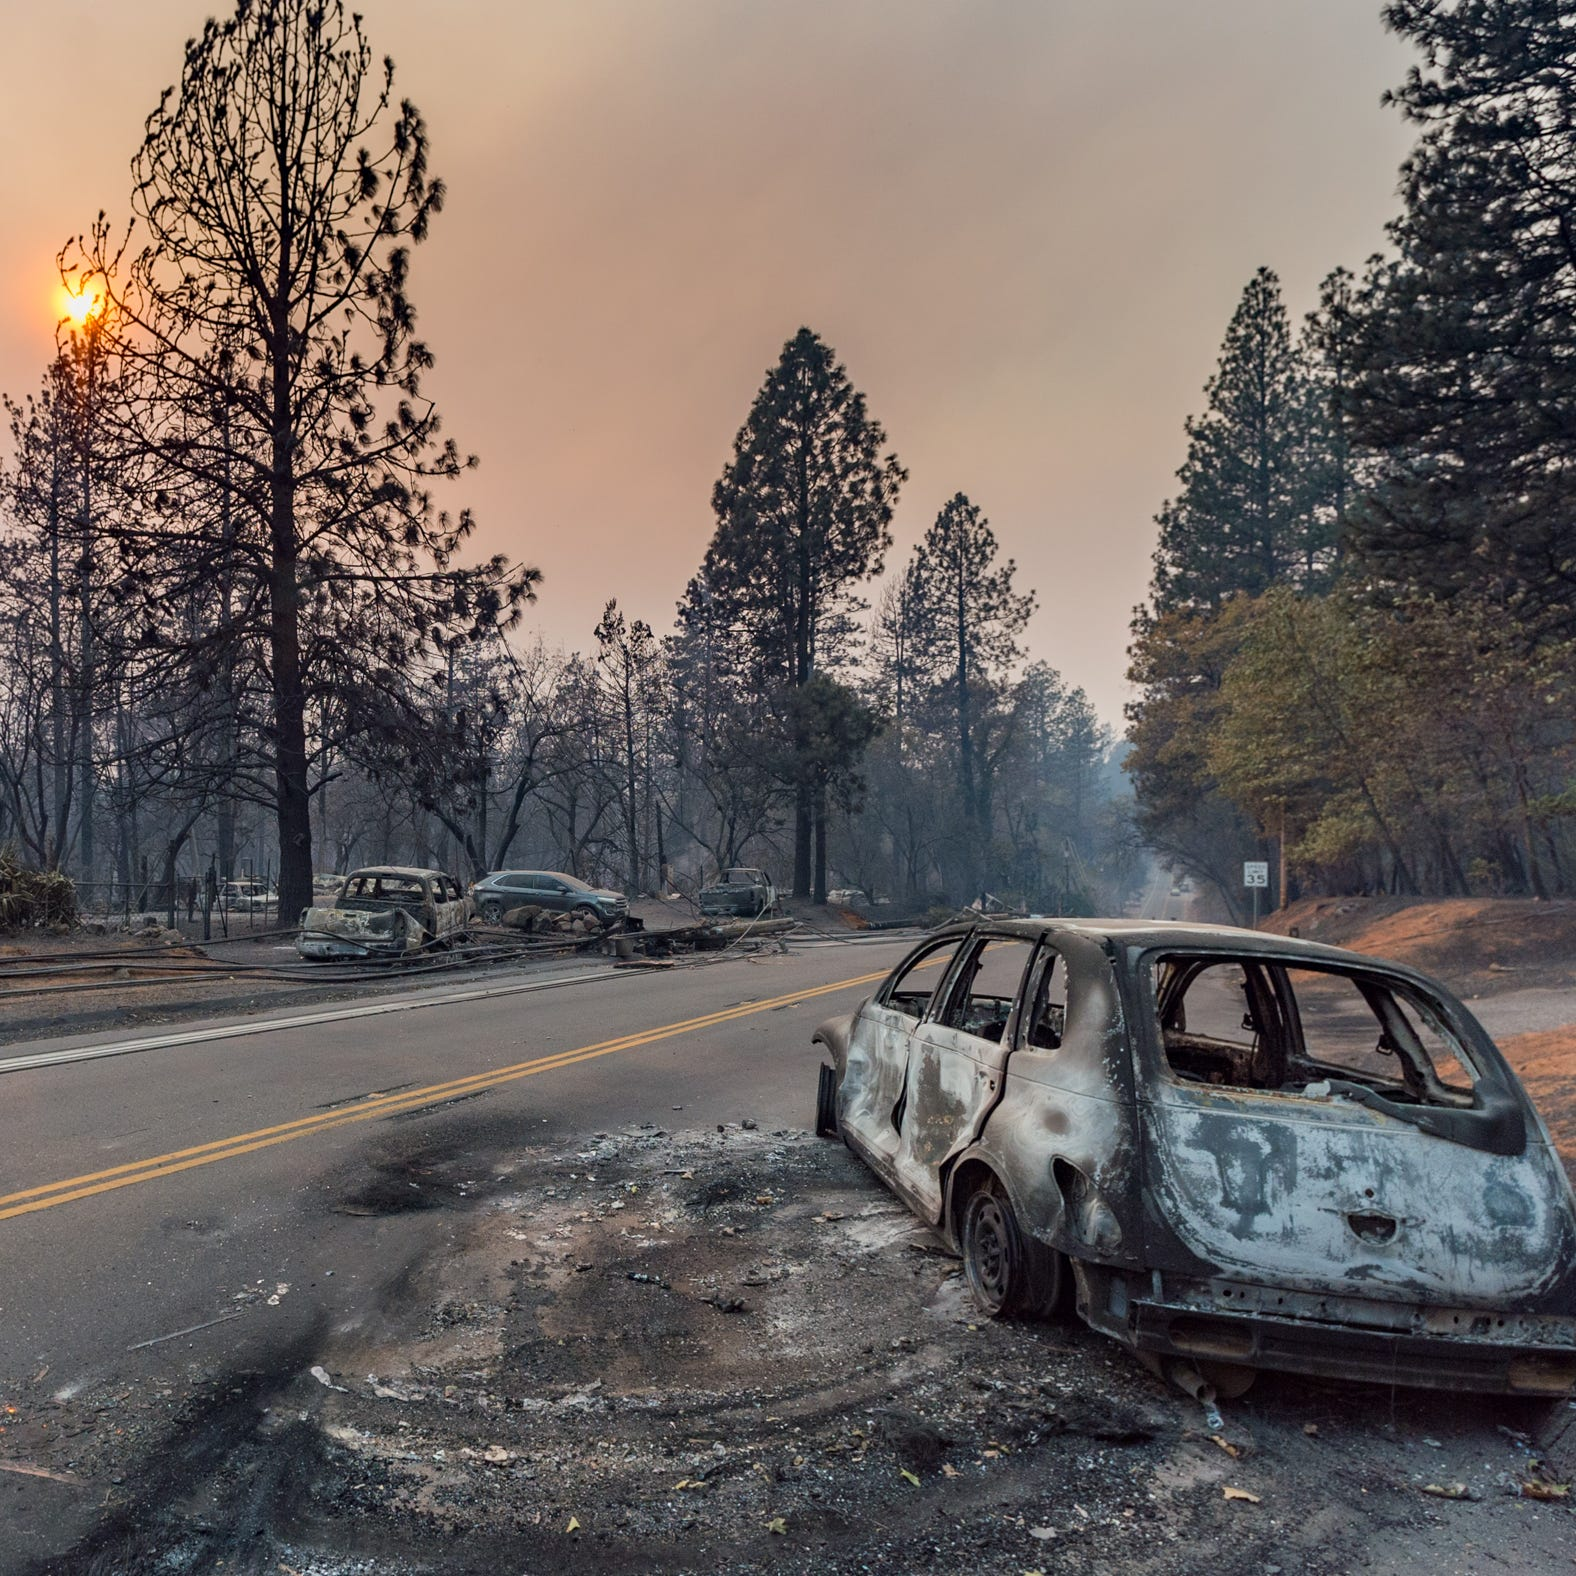 Camp Fire death toll reaches 42, deadliest wildfire in California history